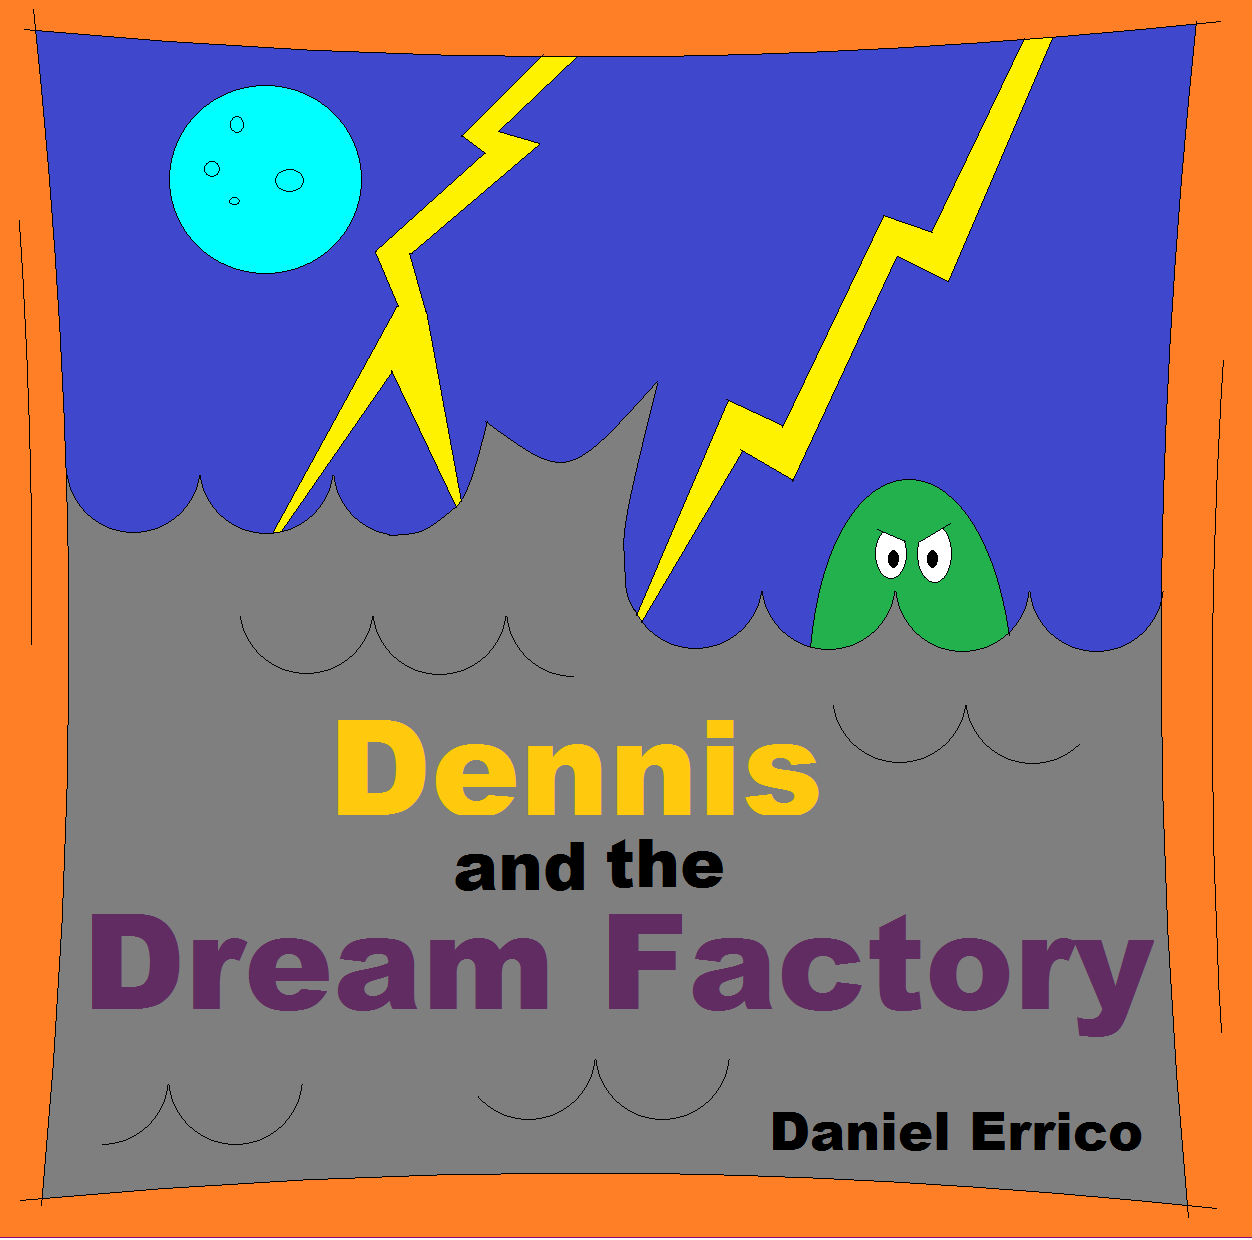 Dennis and the Dream Factory Cover Image All Children's Stories.png